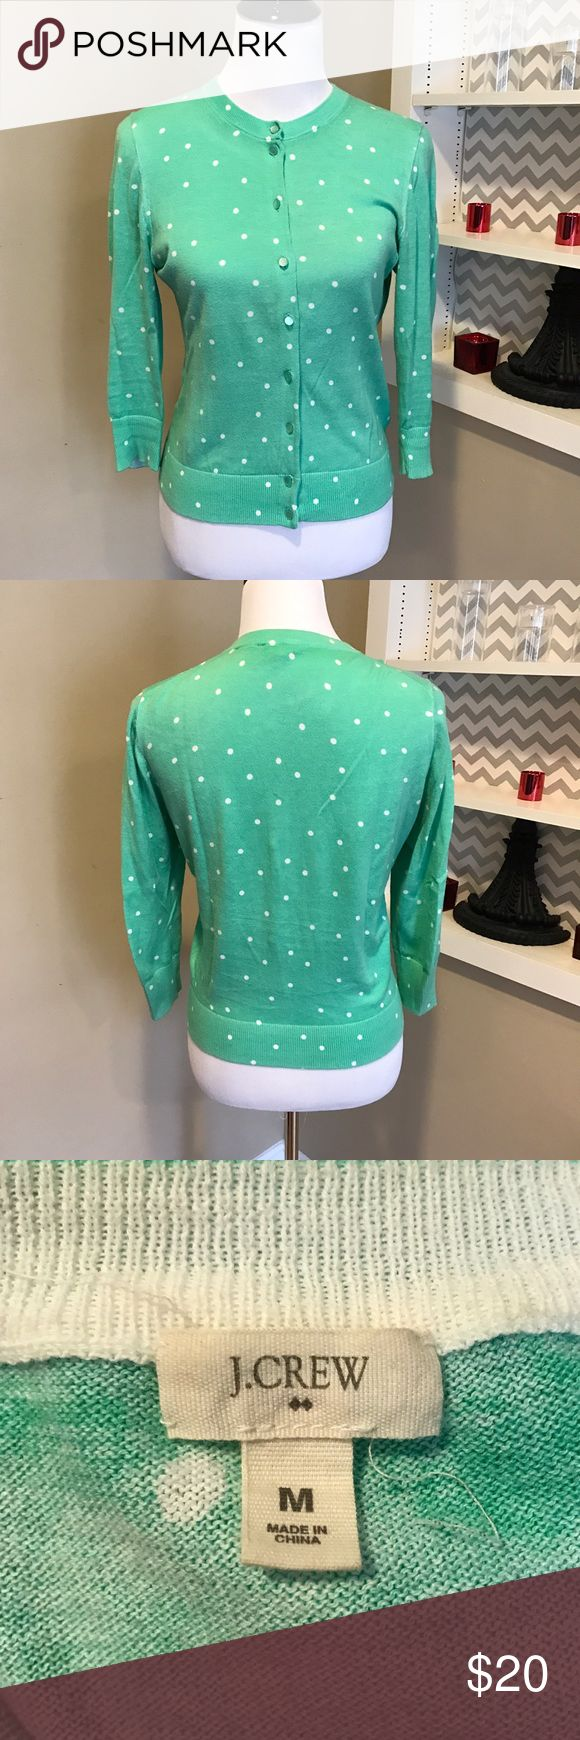 Jcrew mint cardigan Mint cardigan and white polka dots. Worn a few times but in great condition. J. Crew Sweaters Cardigans